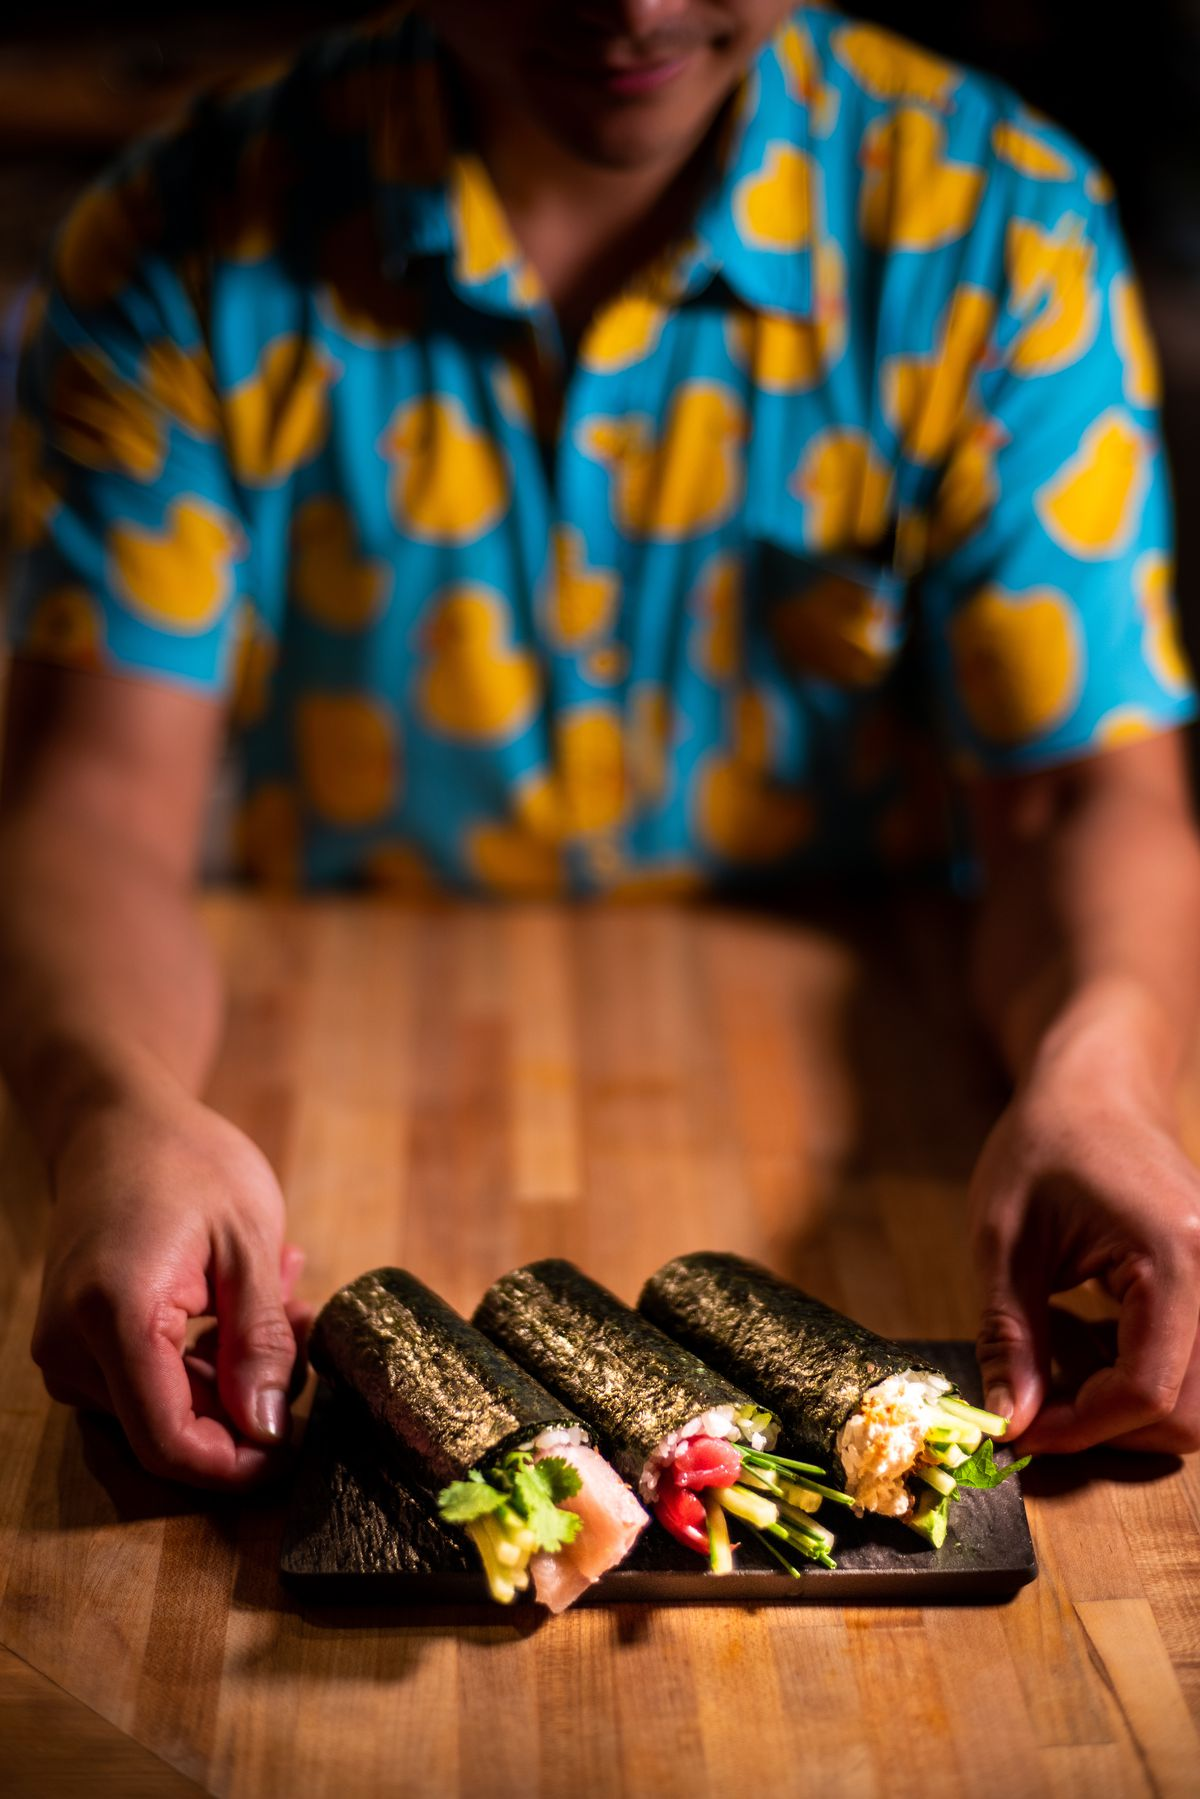 Chef presenting three hand rolls on a serving plate